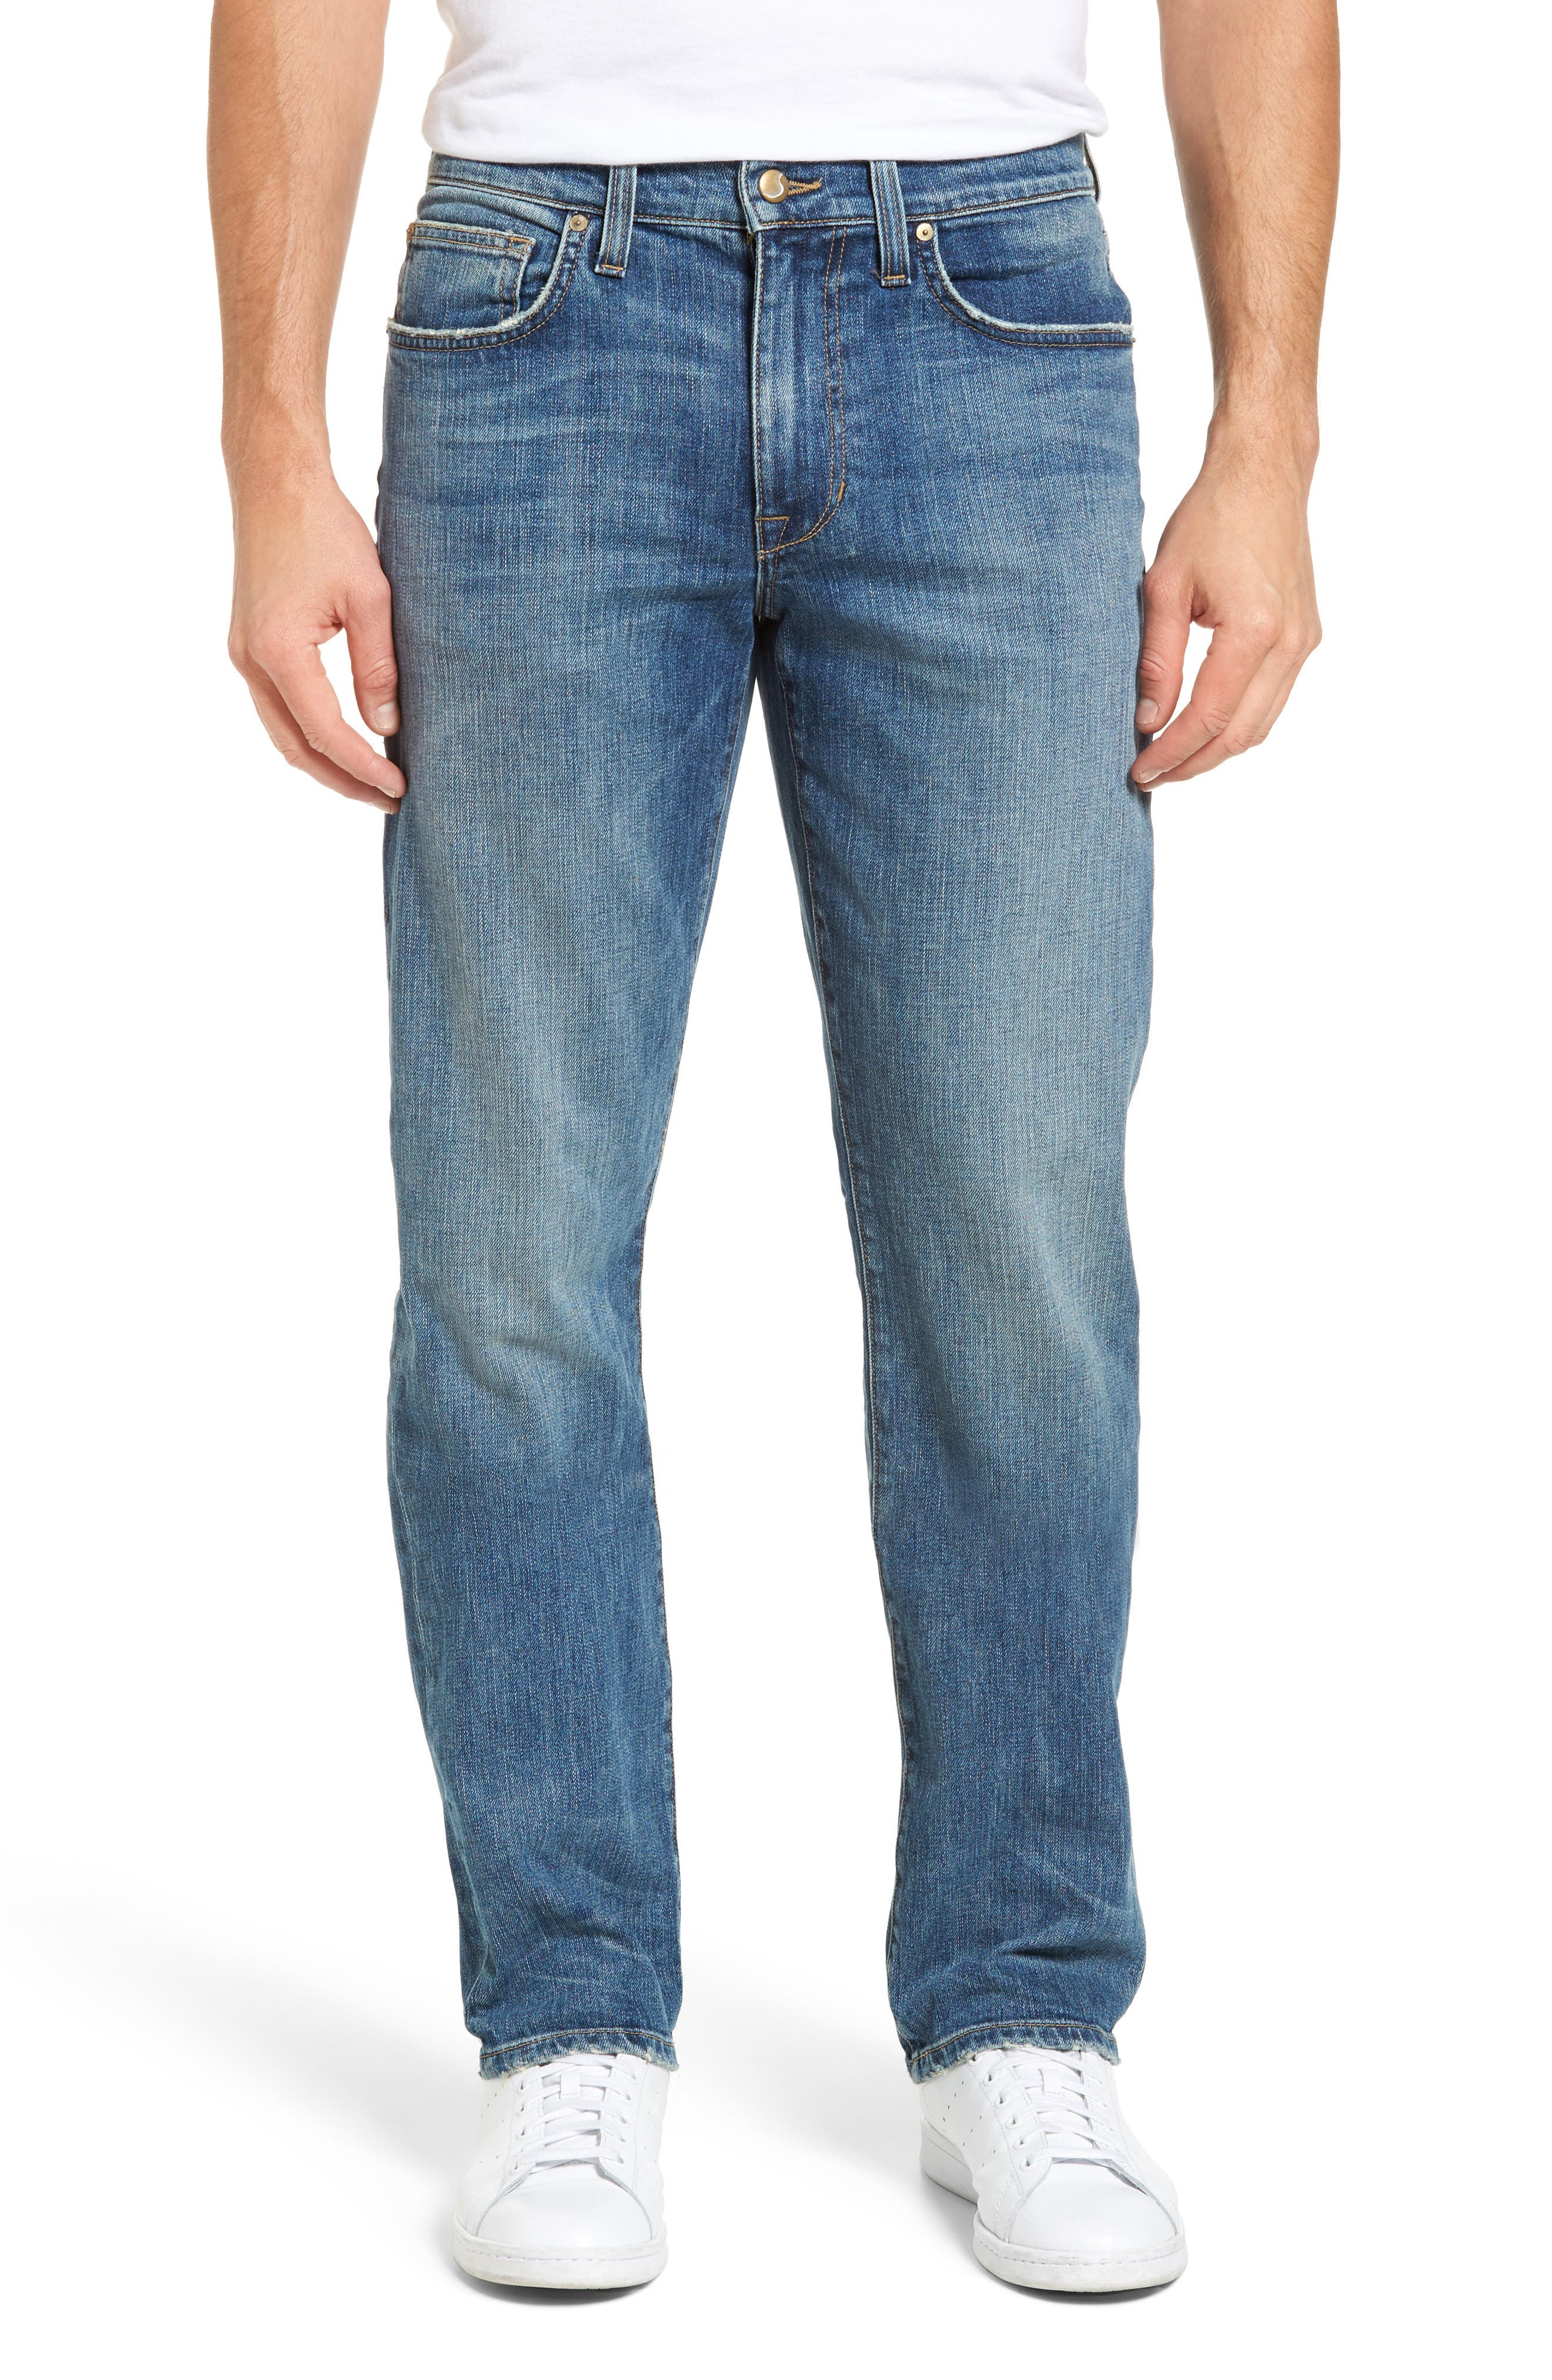 Brixton Slim Straight Fit Jeans,                             Main thumbnail 1, color,                             400